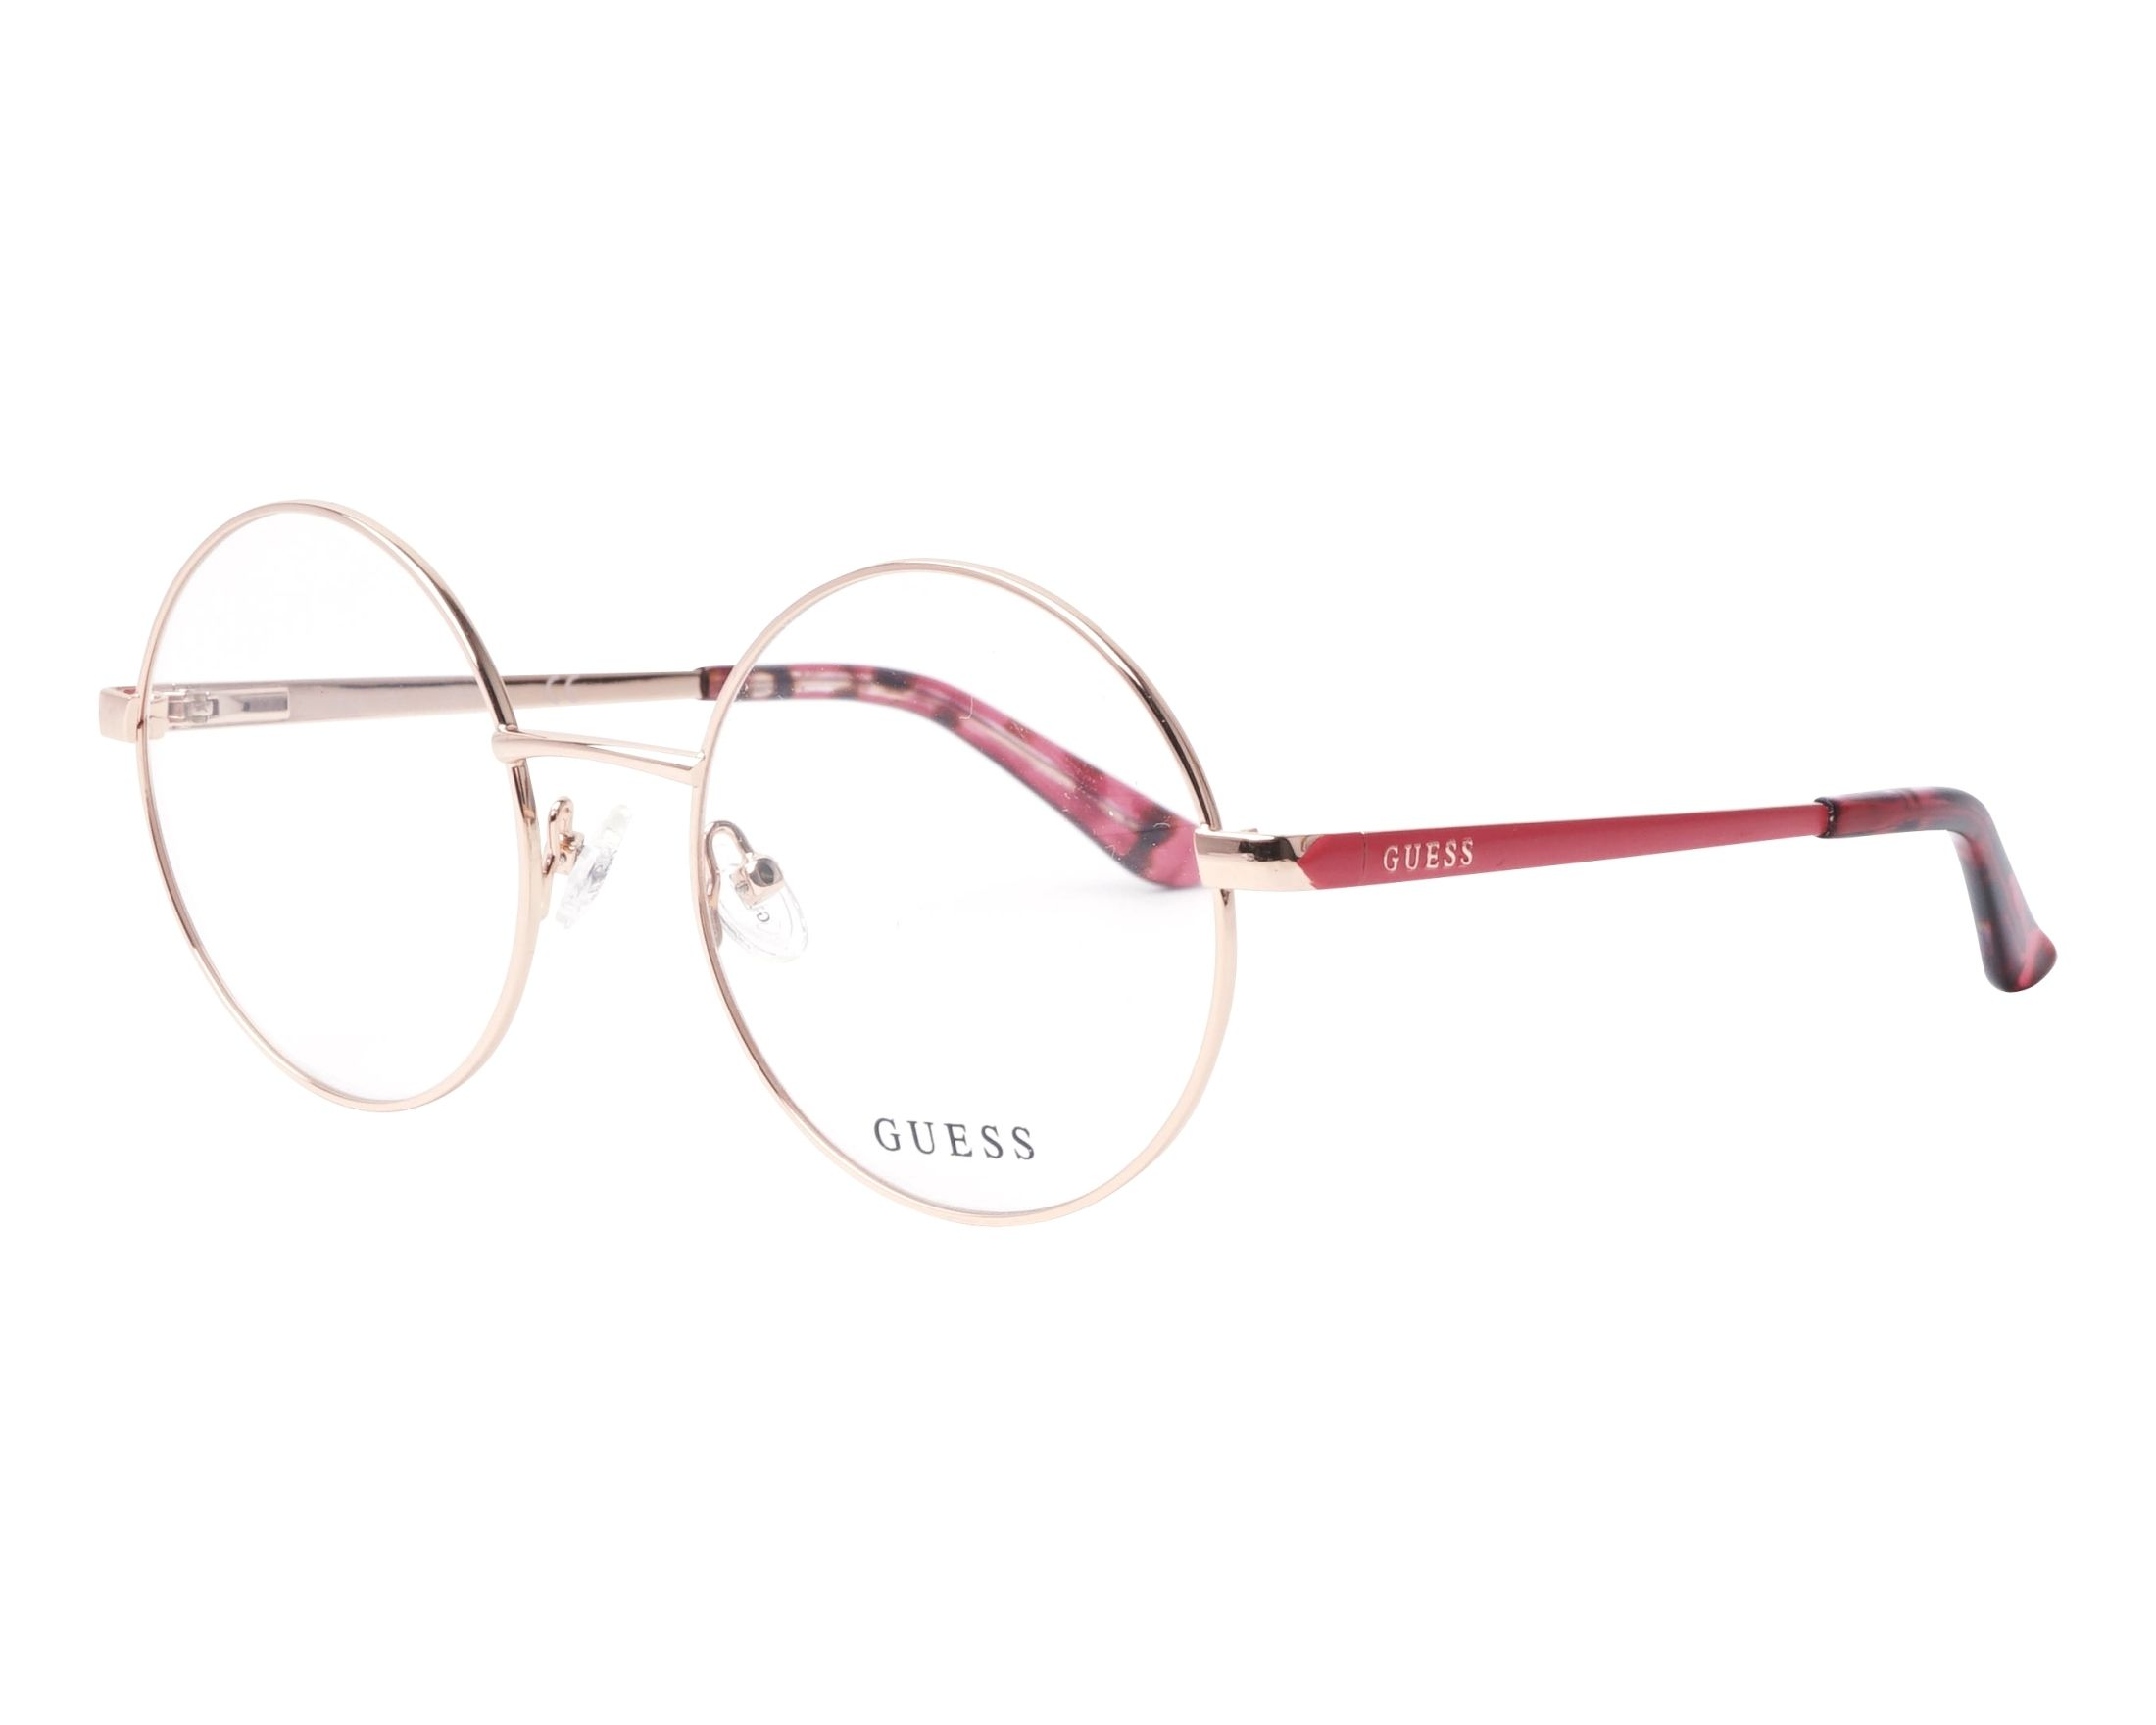 eyeglasses Guess GU-2682 028 52-20 Gold Copper Rosa profile view